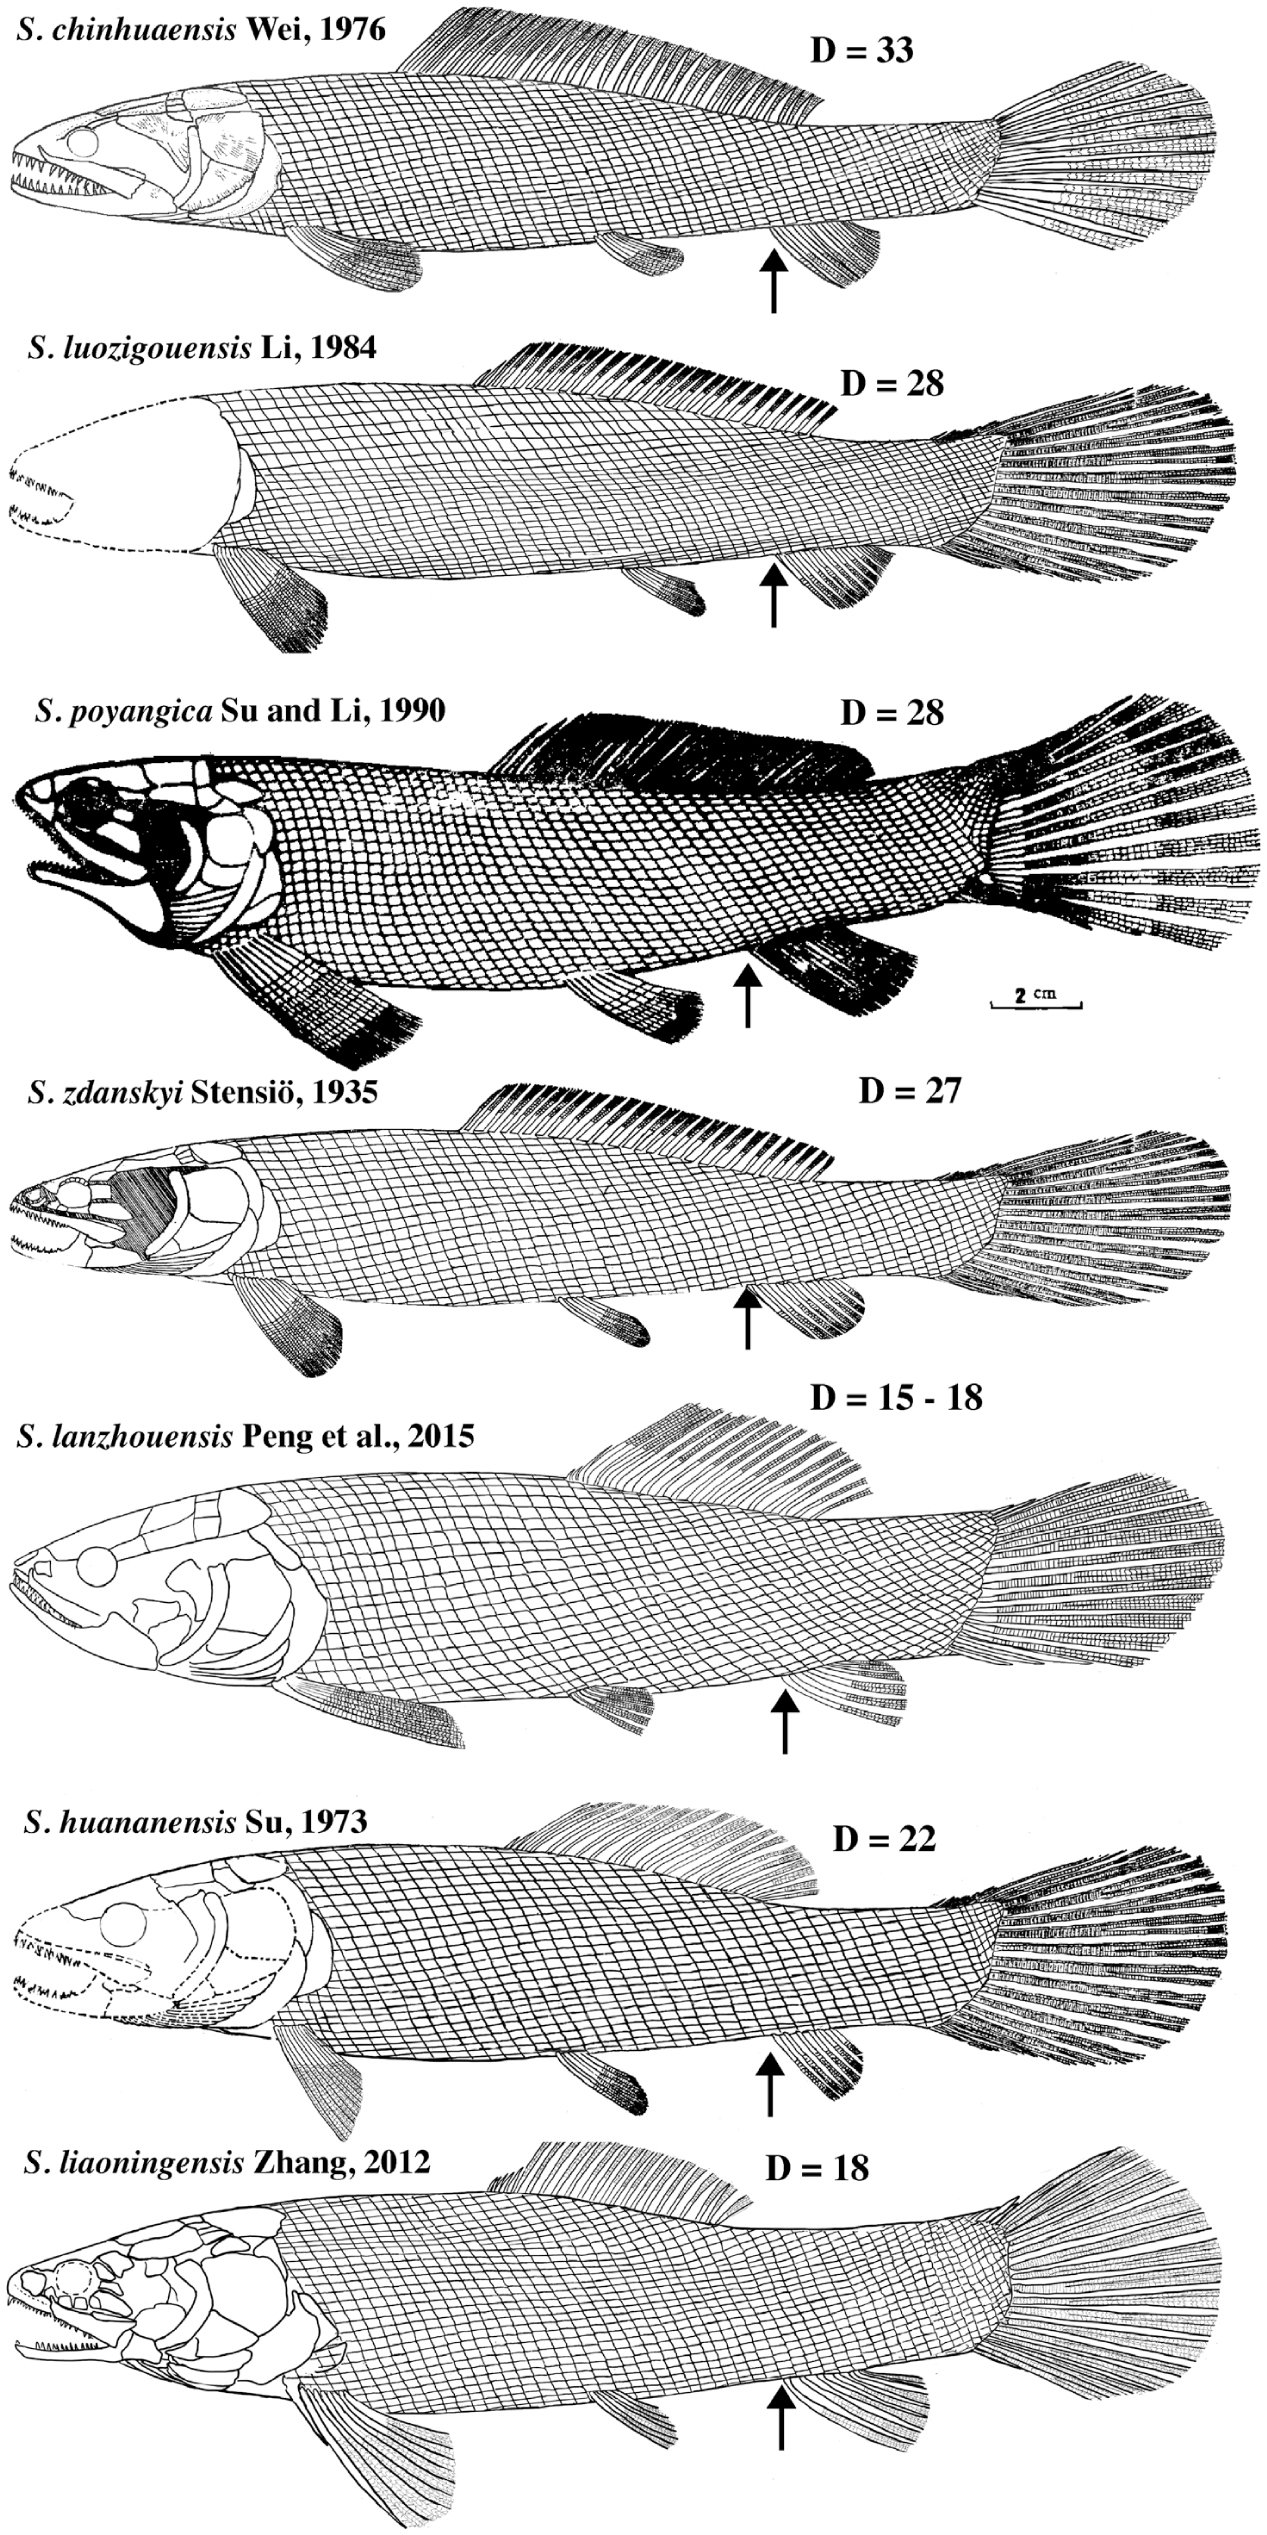 hight resolution of arrows show the position of the origin of the anal fin d number of dorsal fin rays restoration of s poyangica from su and li 1990 and s zdanskyi